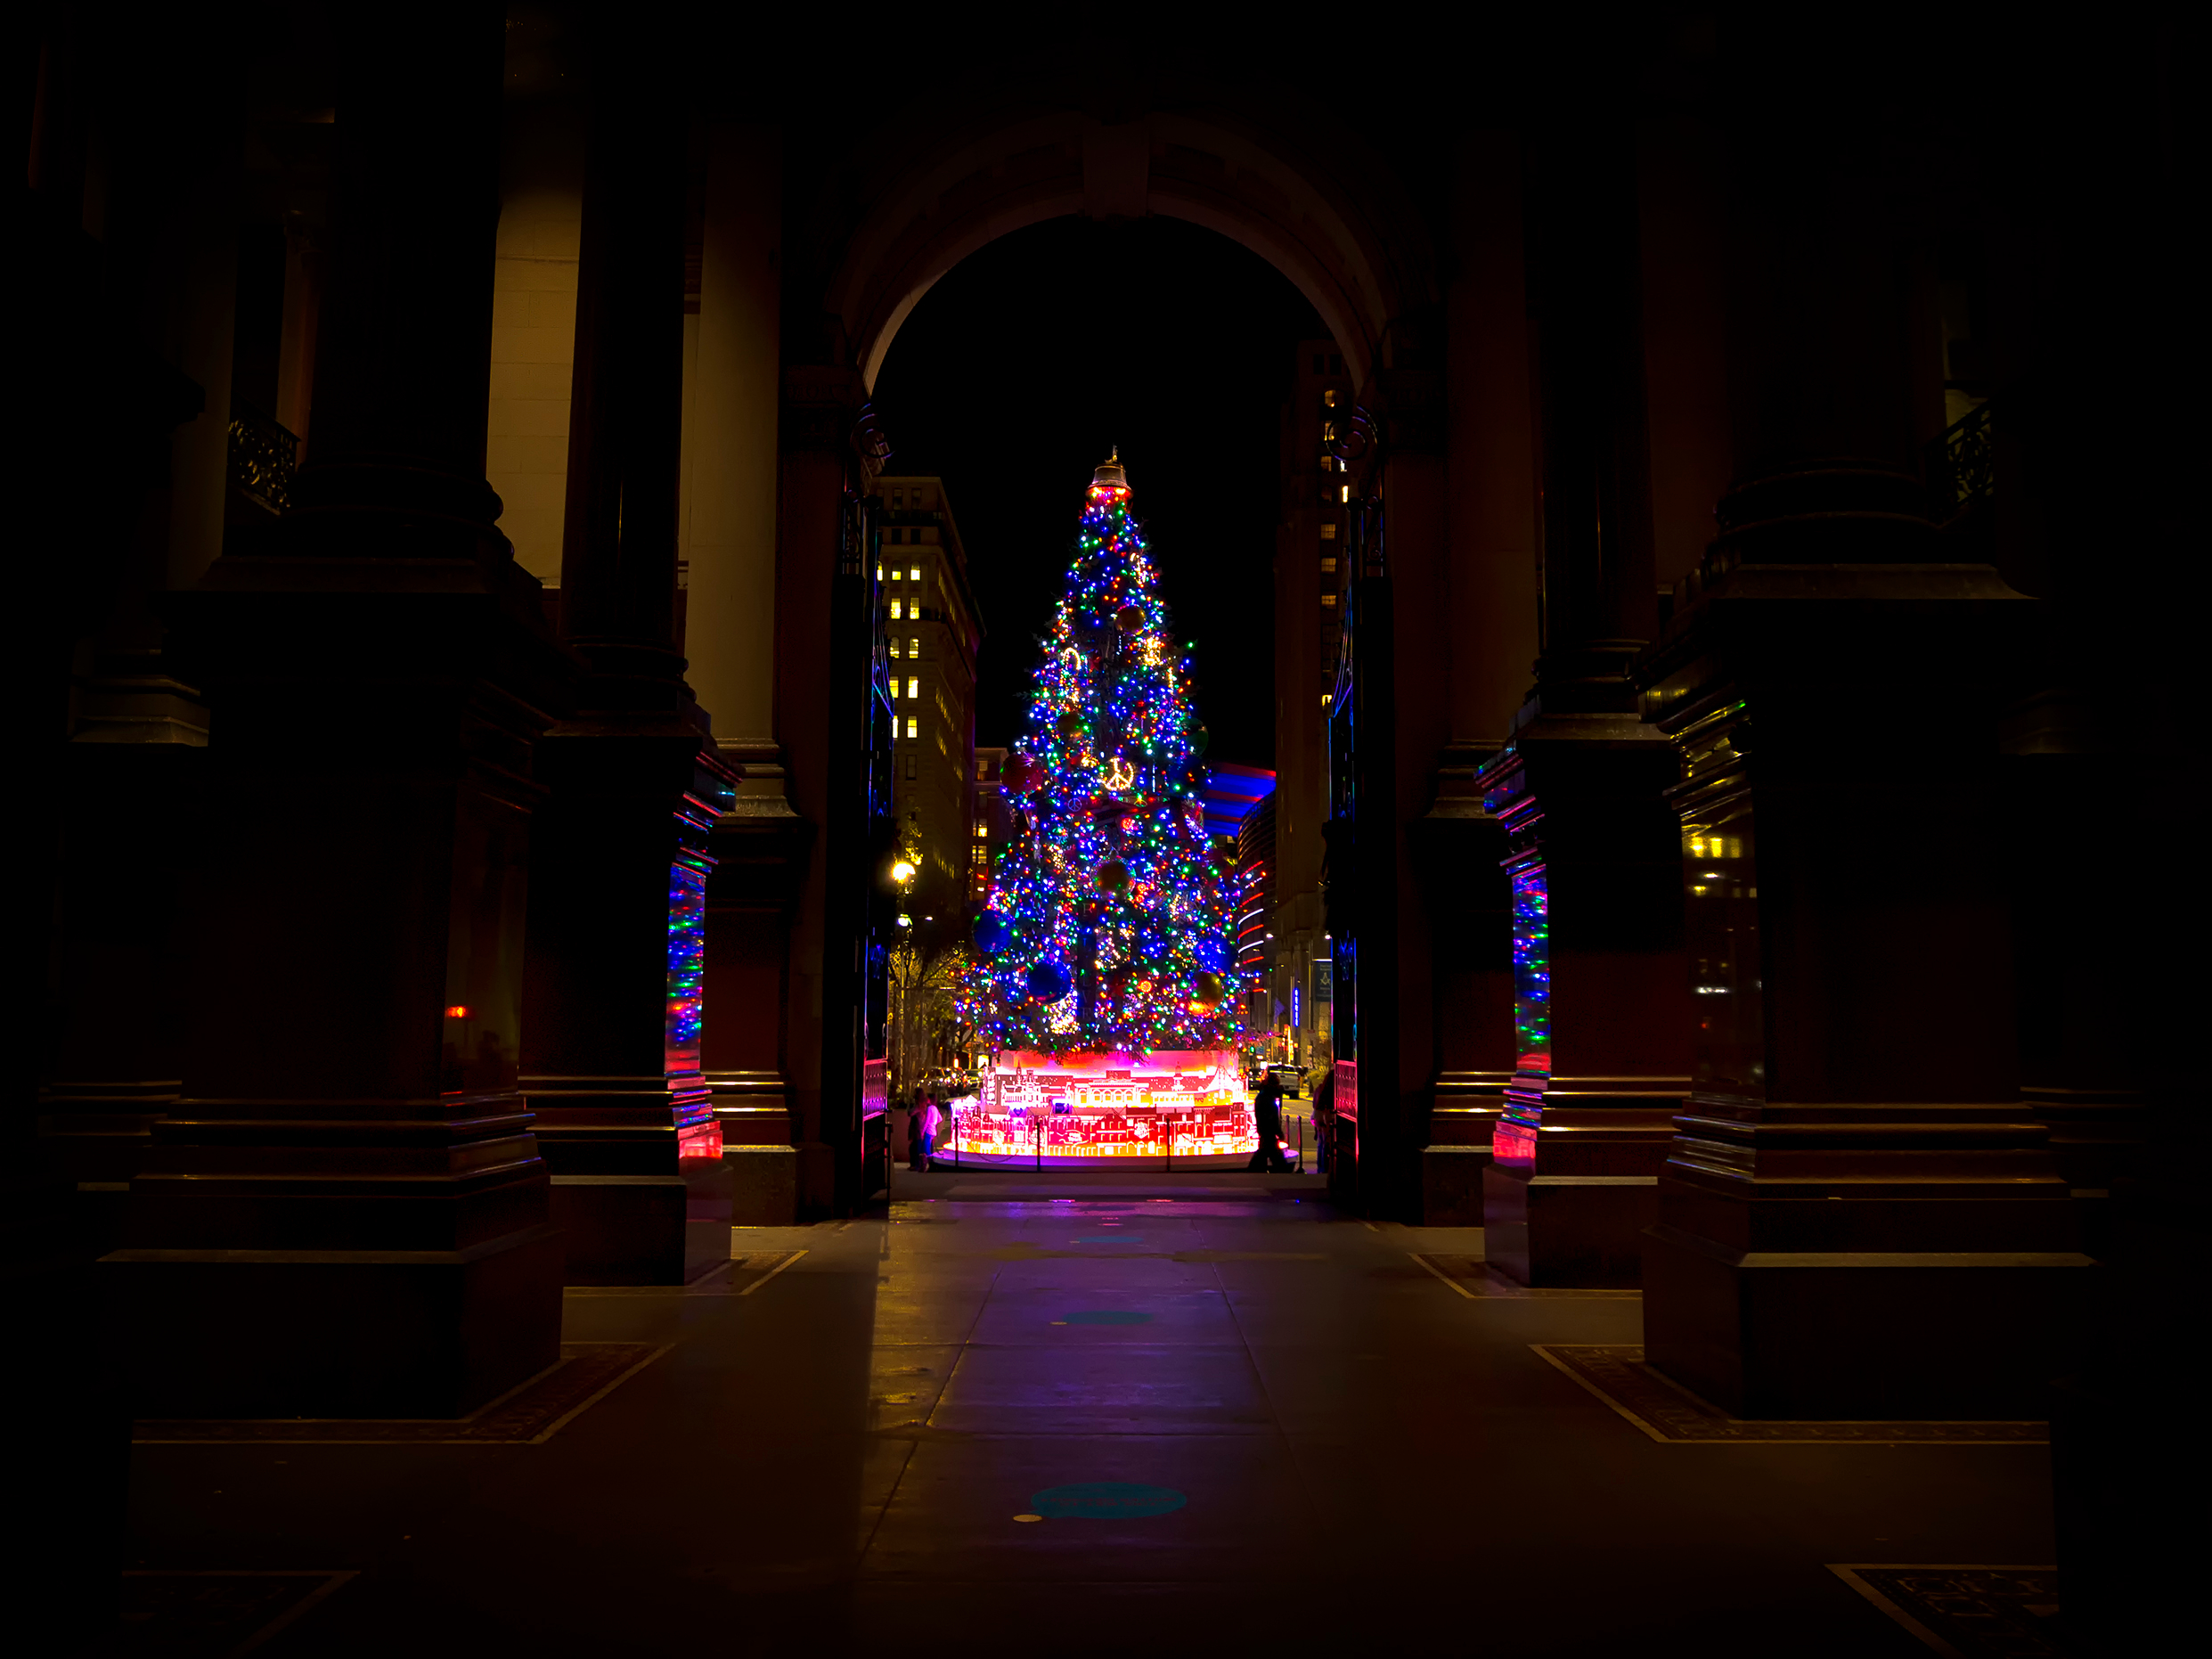 A Christmas tree illuminated with lights in a darkened room with arched doorways.